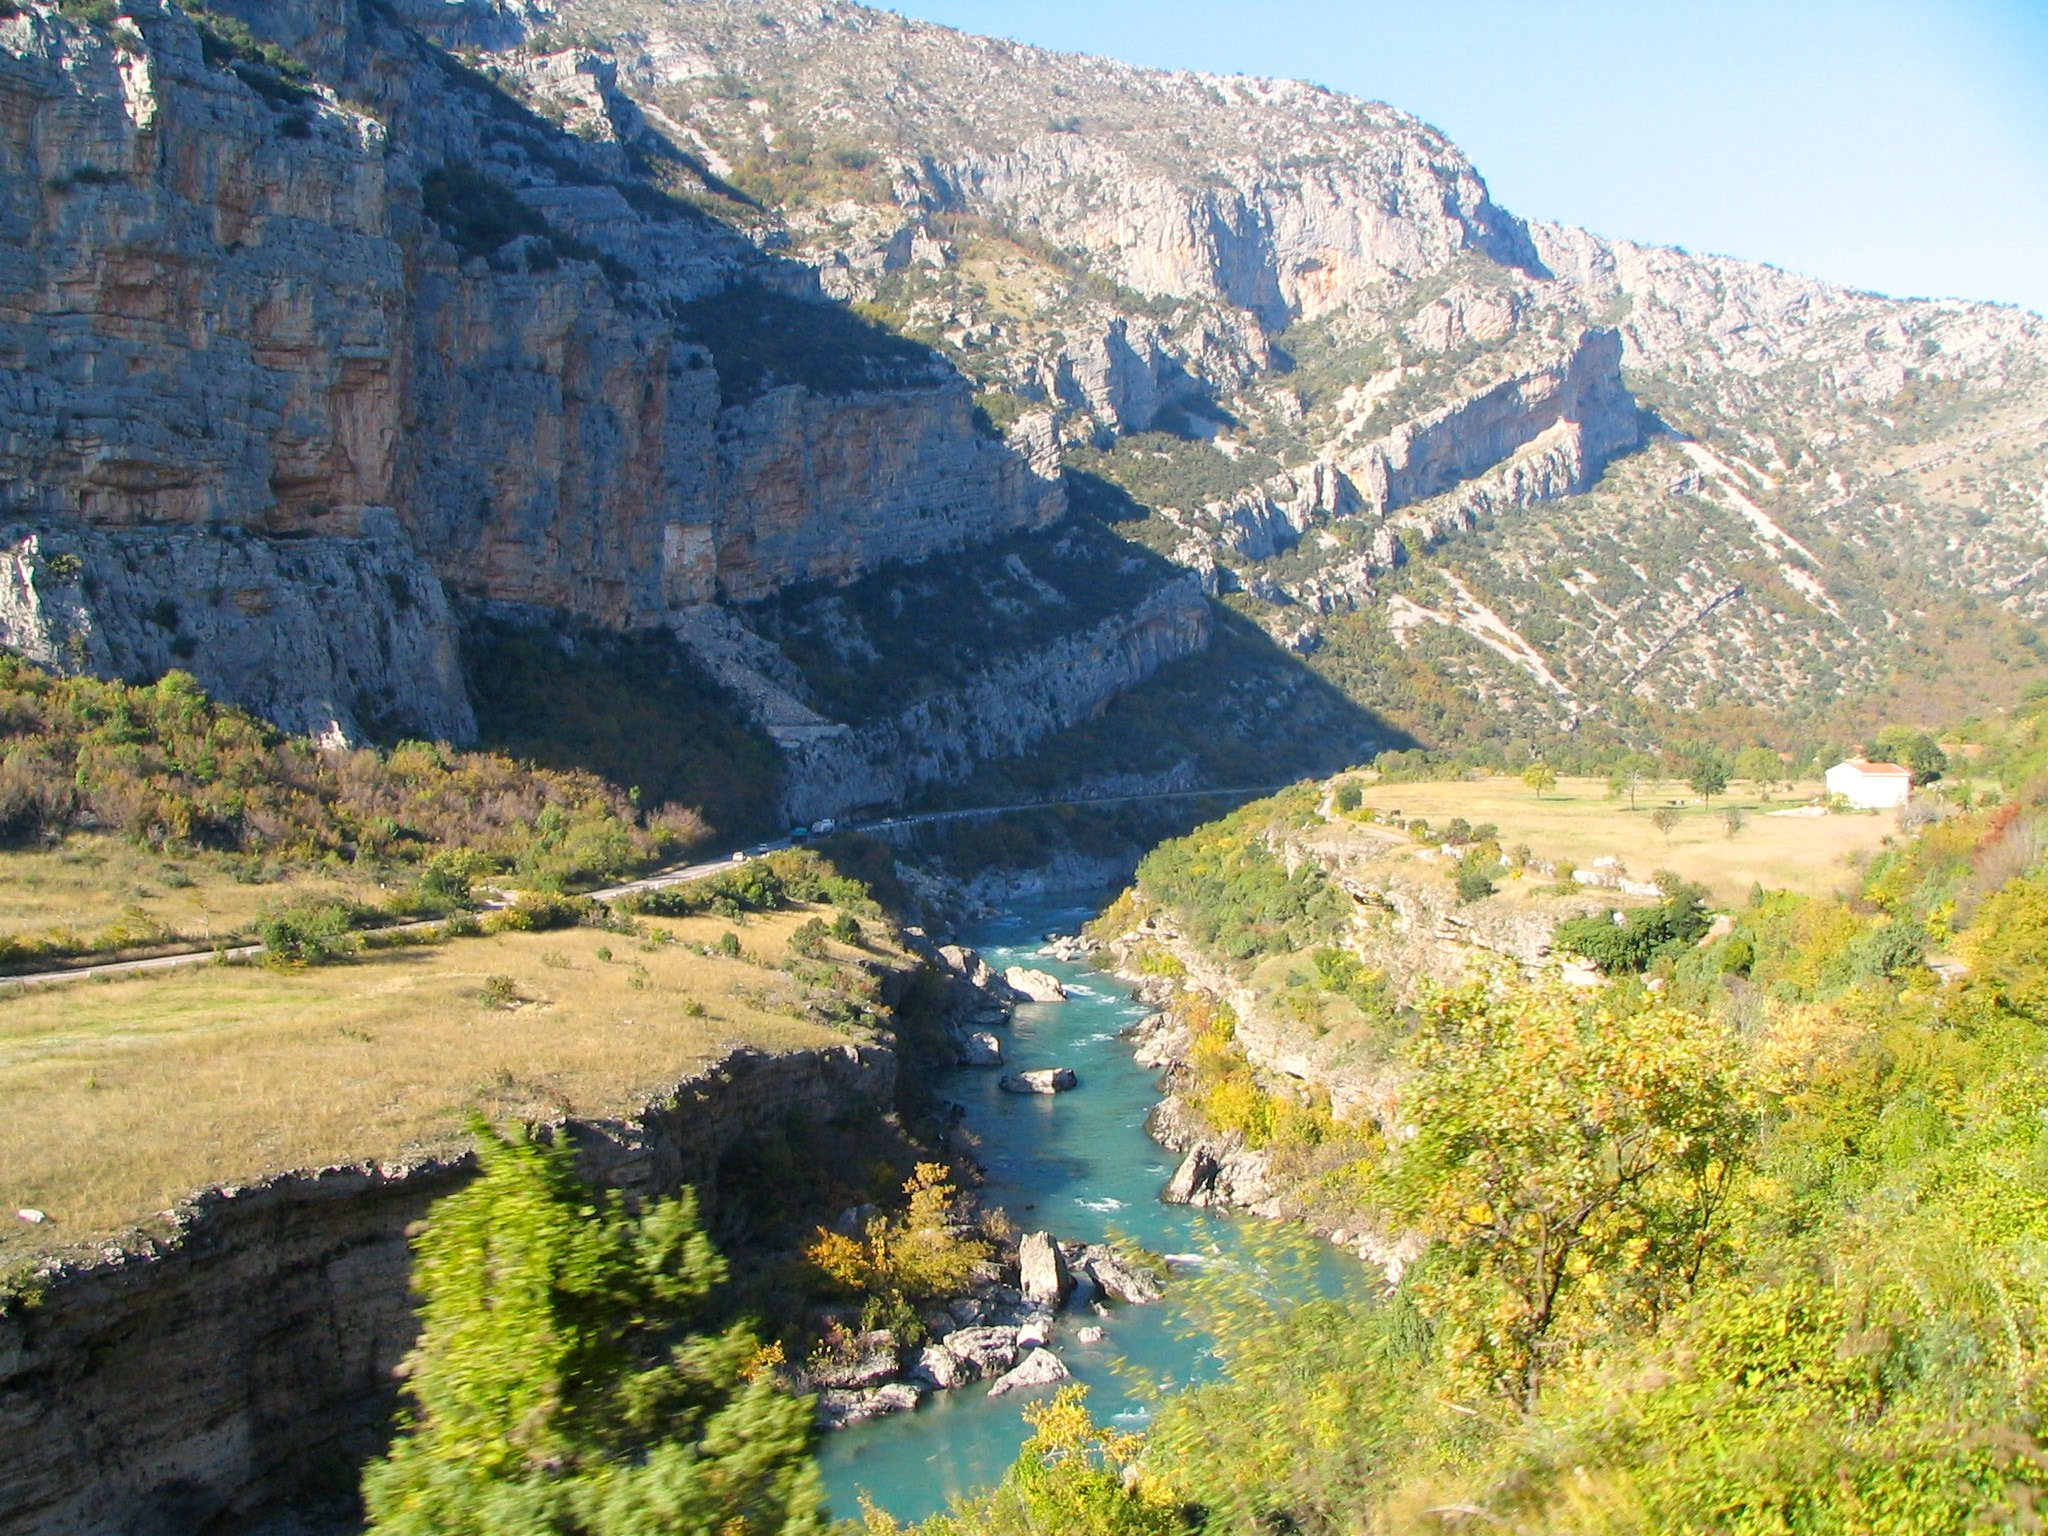 Spectacular Moraca river valley, Vicuna R, Flickr, CC BY-SA 2.0